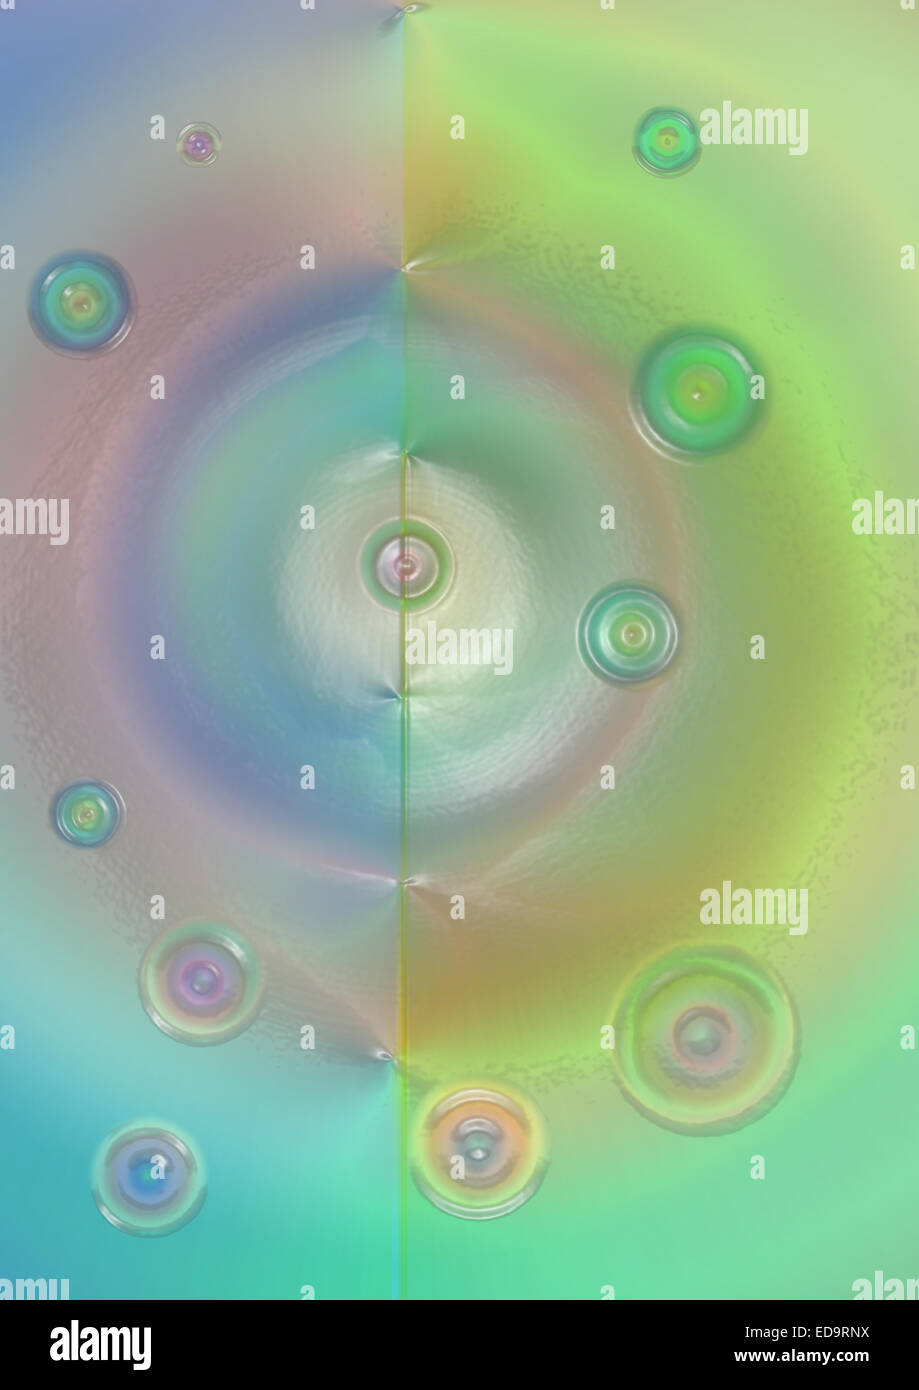 Bright vitreous background with colored circles - Stock Image